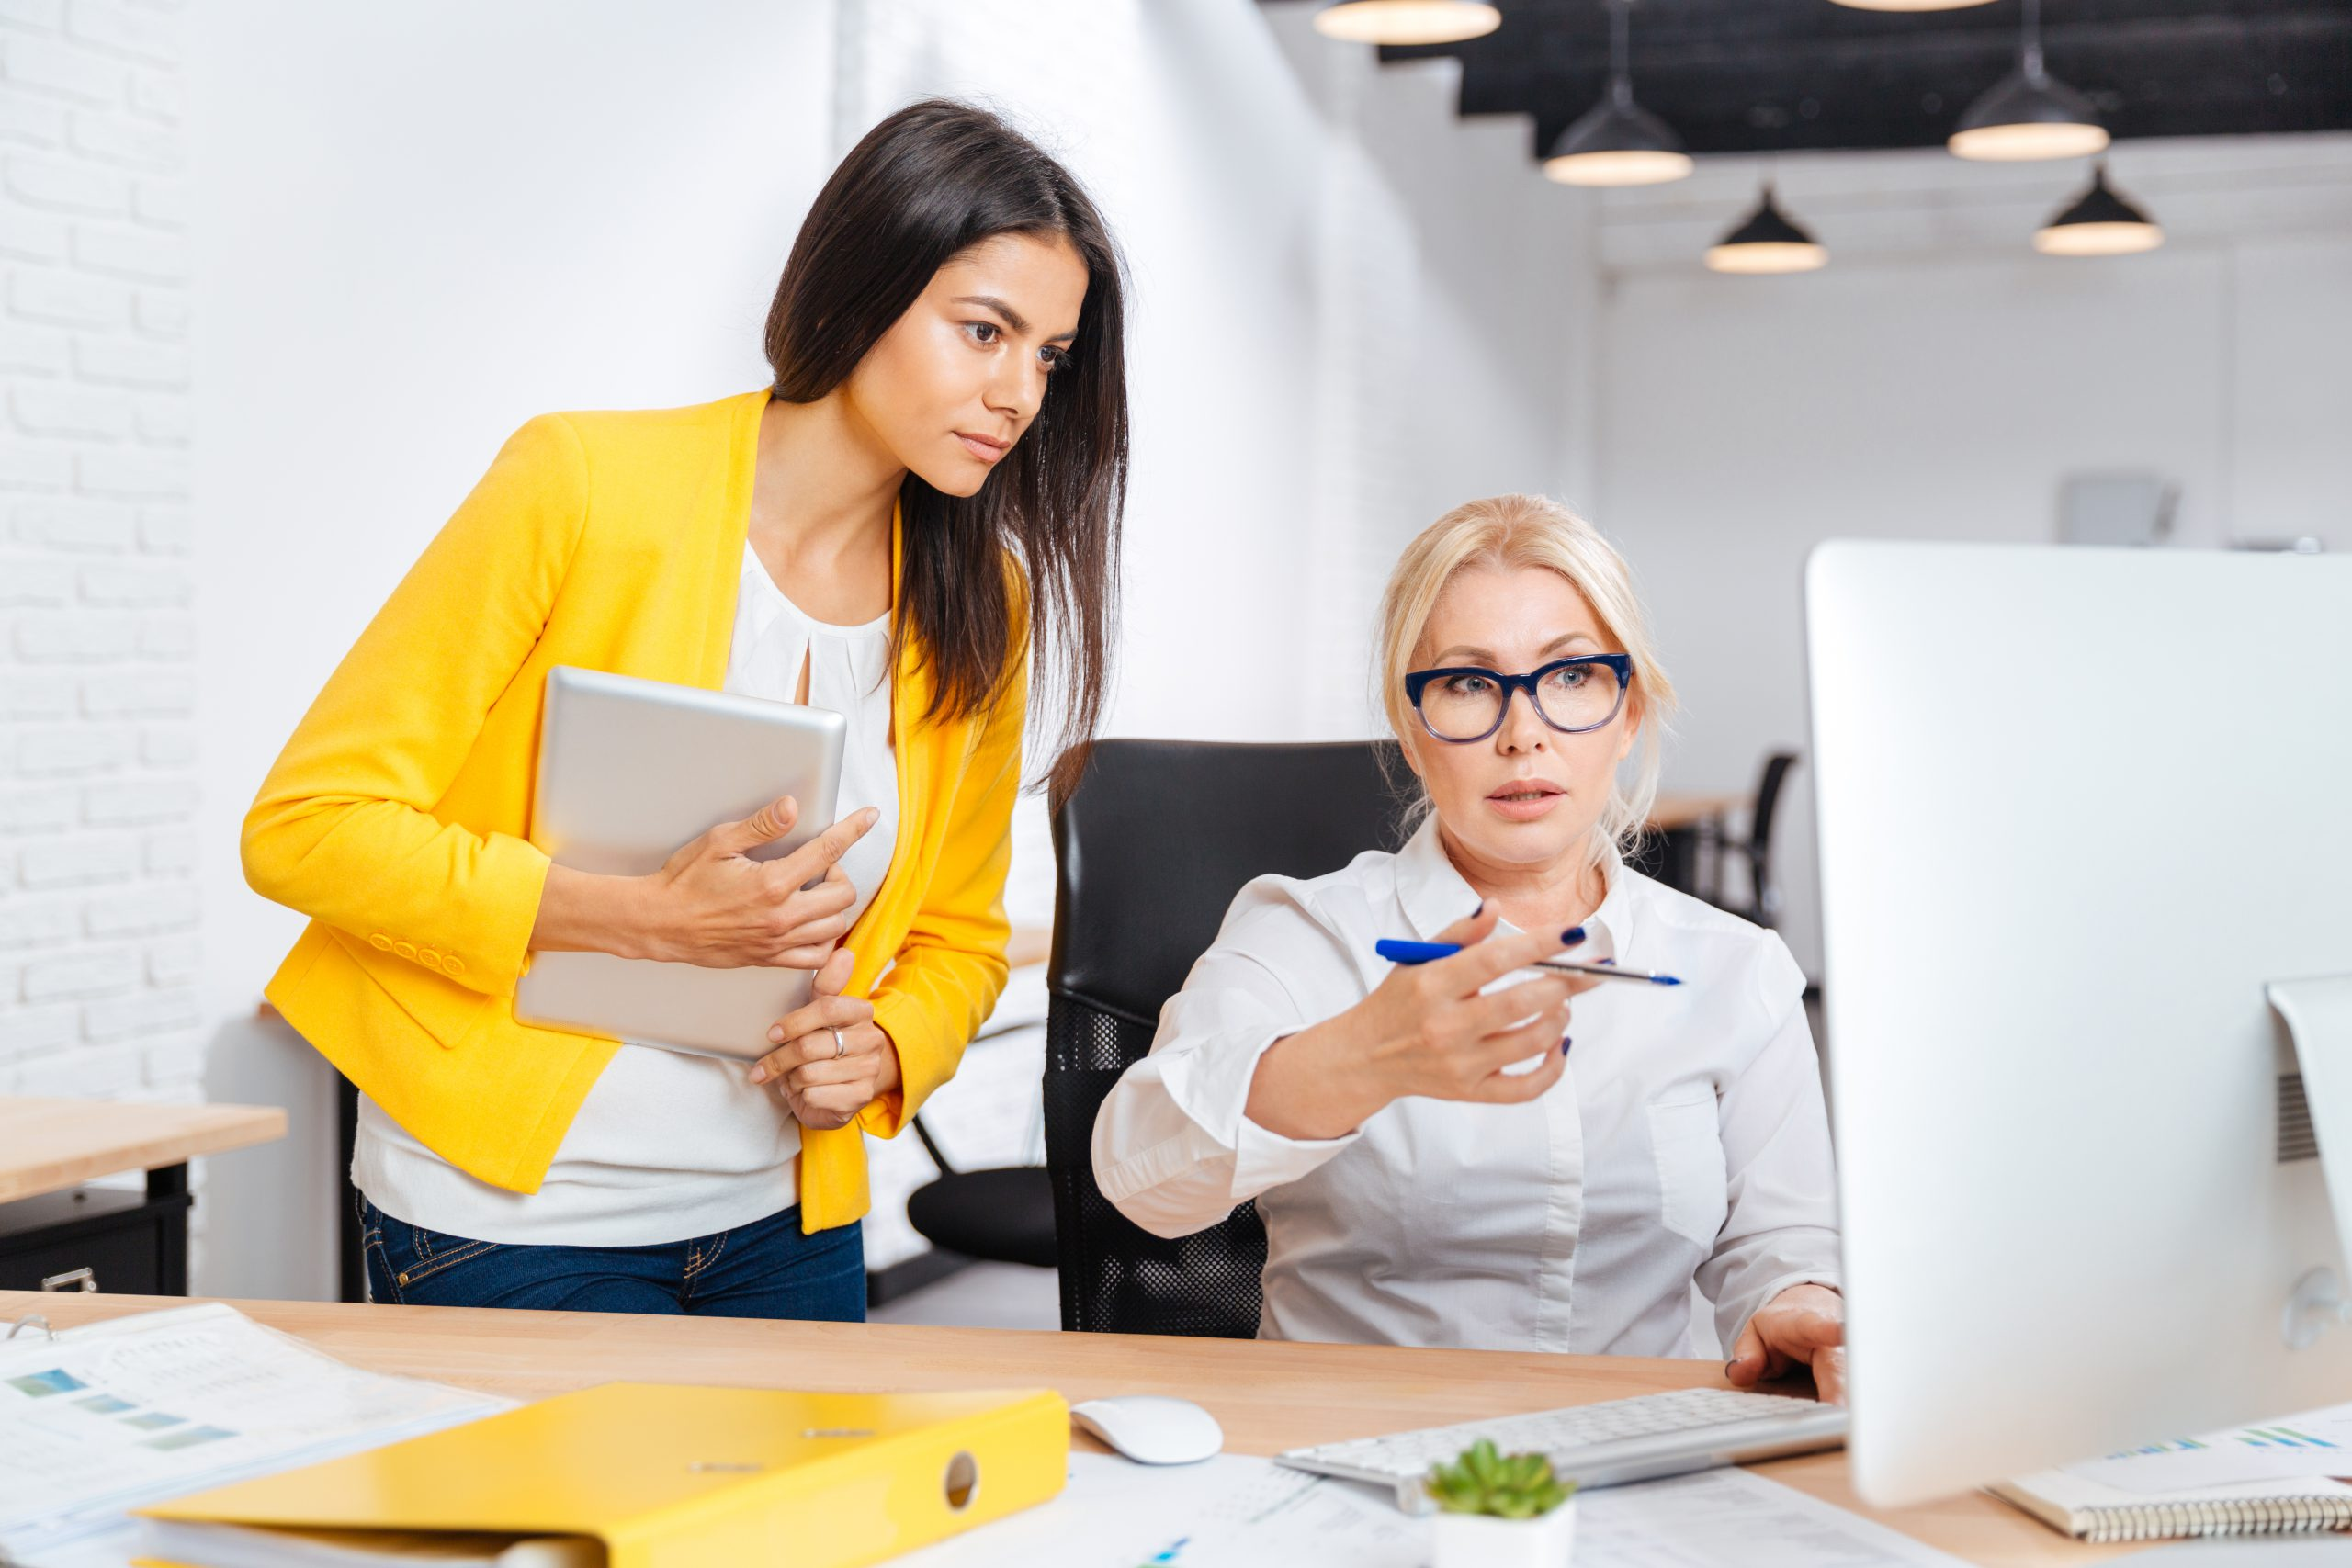 Business women having a brainstor meeting and build real customer